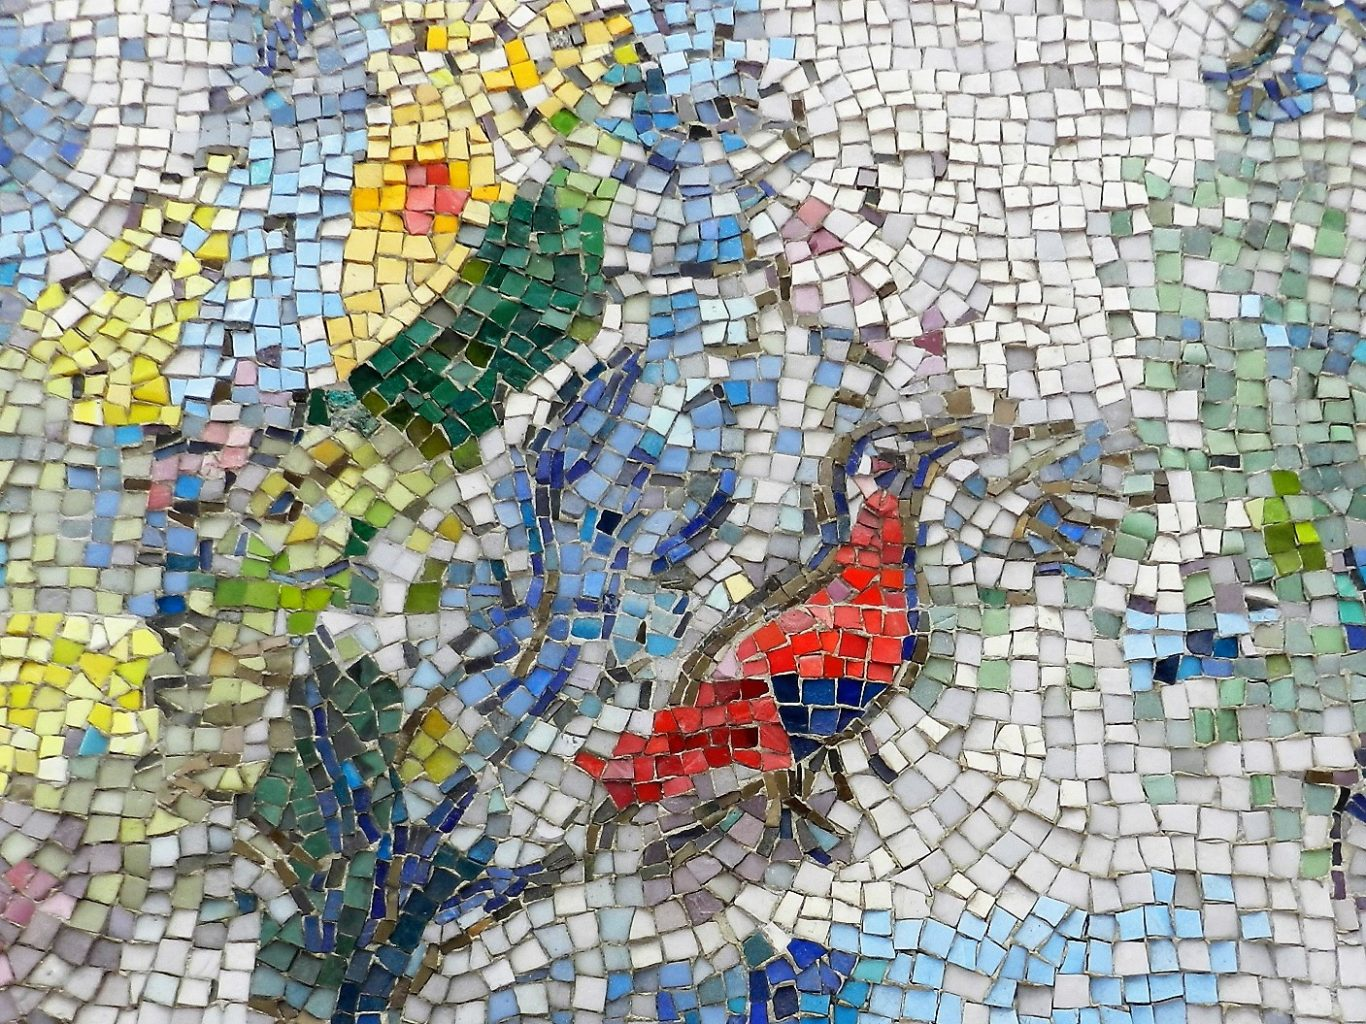 Marc Chagall's Four Seasons mosaic_ red bird.